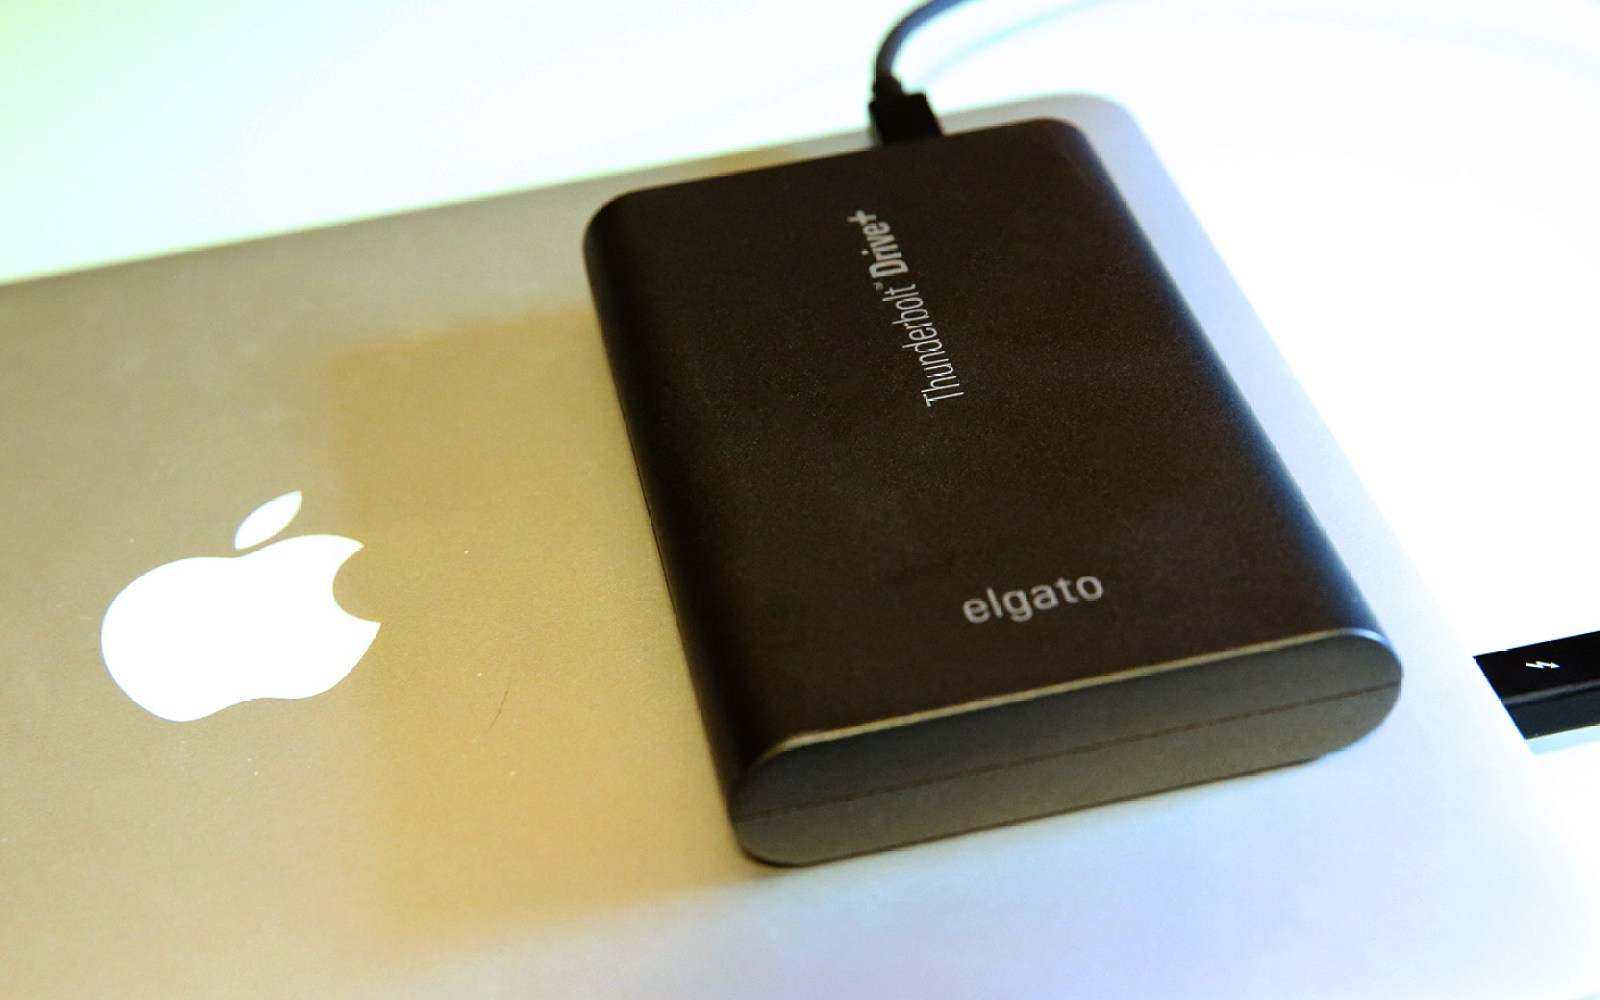 How-To: Update your old MacBook, Mac mini, or Mac Pro hard drive with a fast SSD